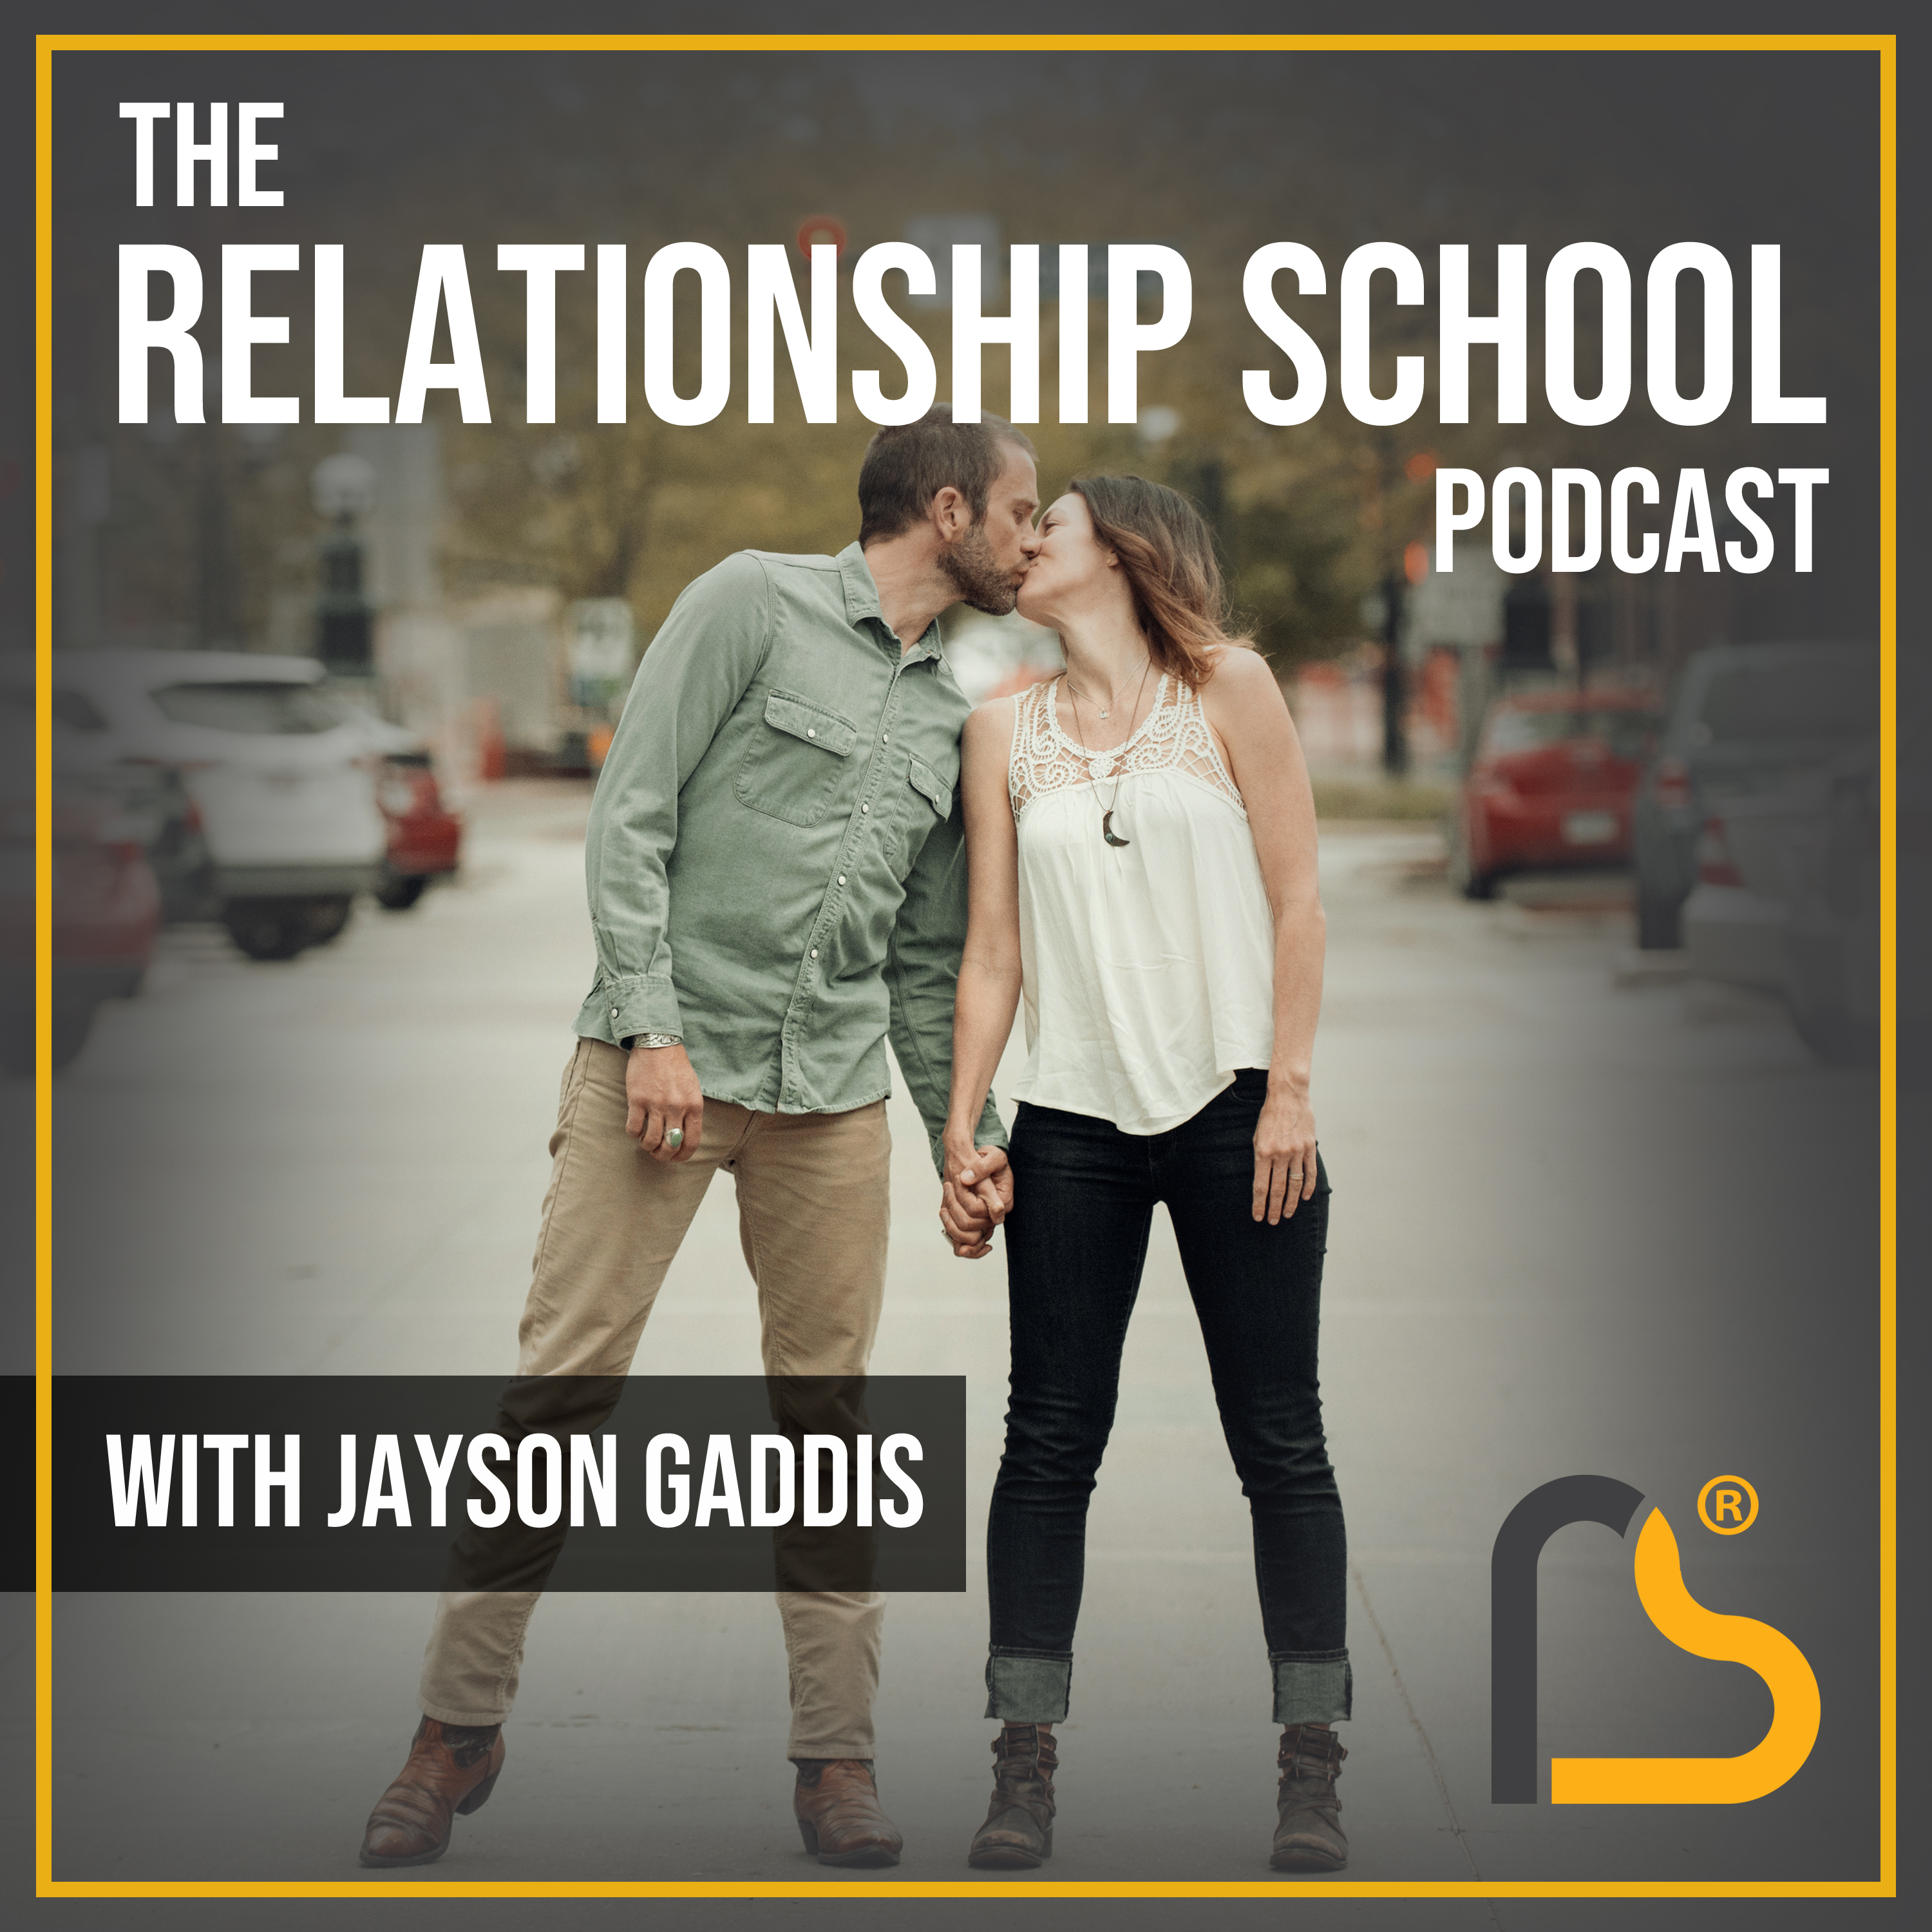 The Relationship School Podcast - How to change your relationship patterns with NLP - Relationship School Podcast EPISODE 253